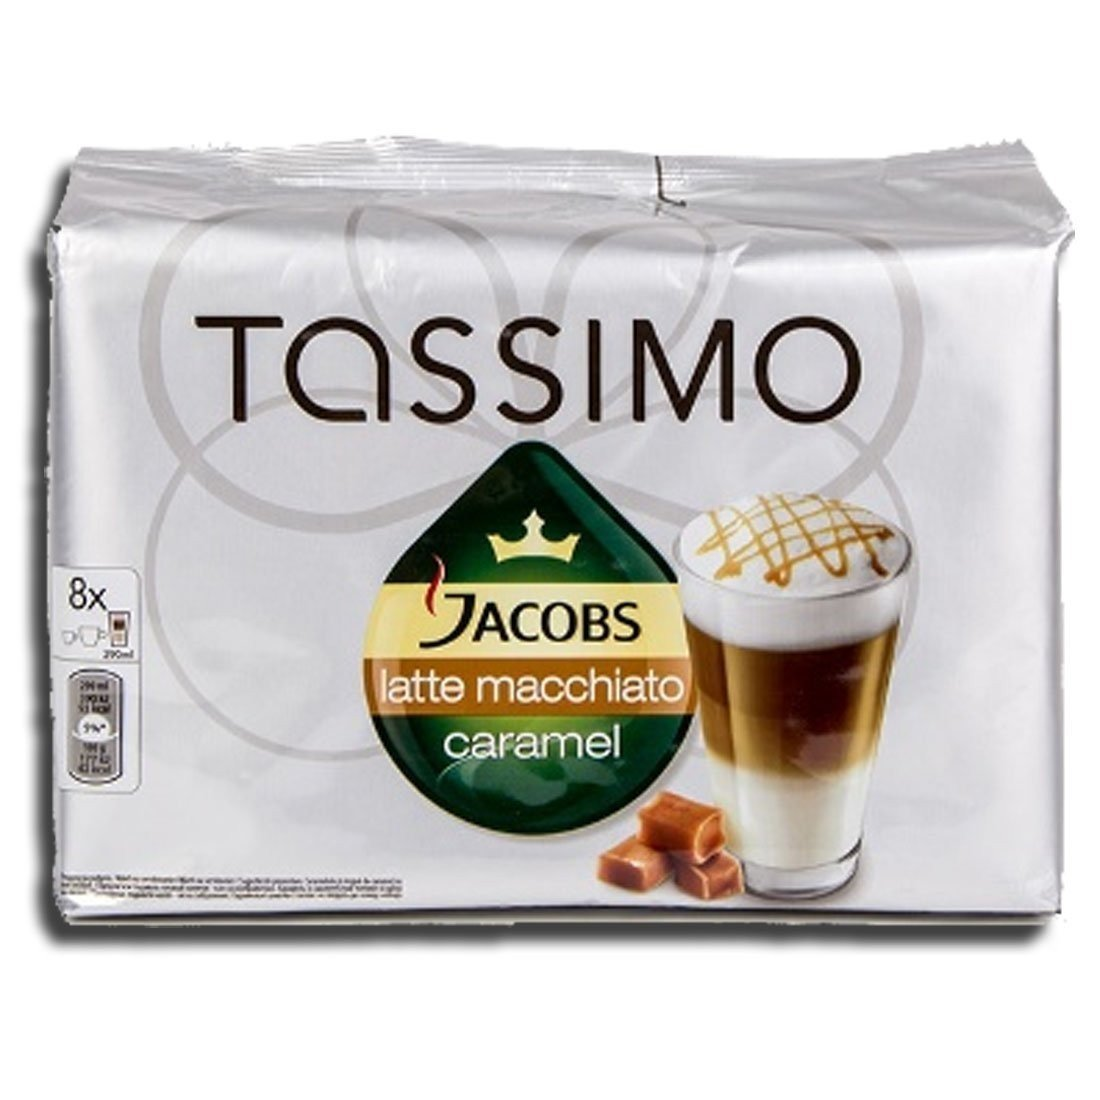 Factory Sealed Pack Tassimo T-Disc Pods Jacobs Caramel Latte Macchiato Coffee - 8 Servings - Includes Creamer Pods